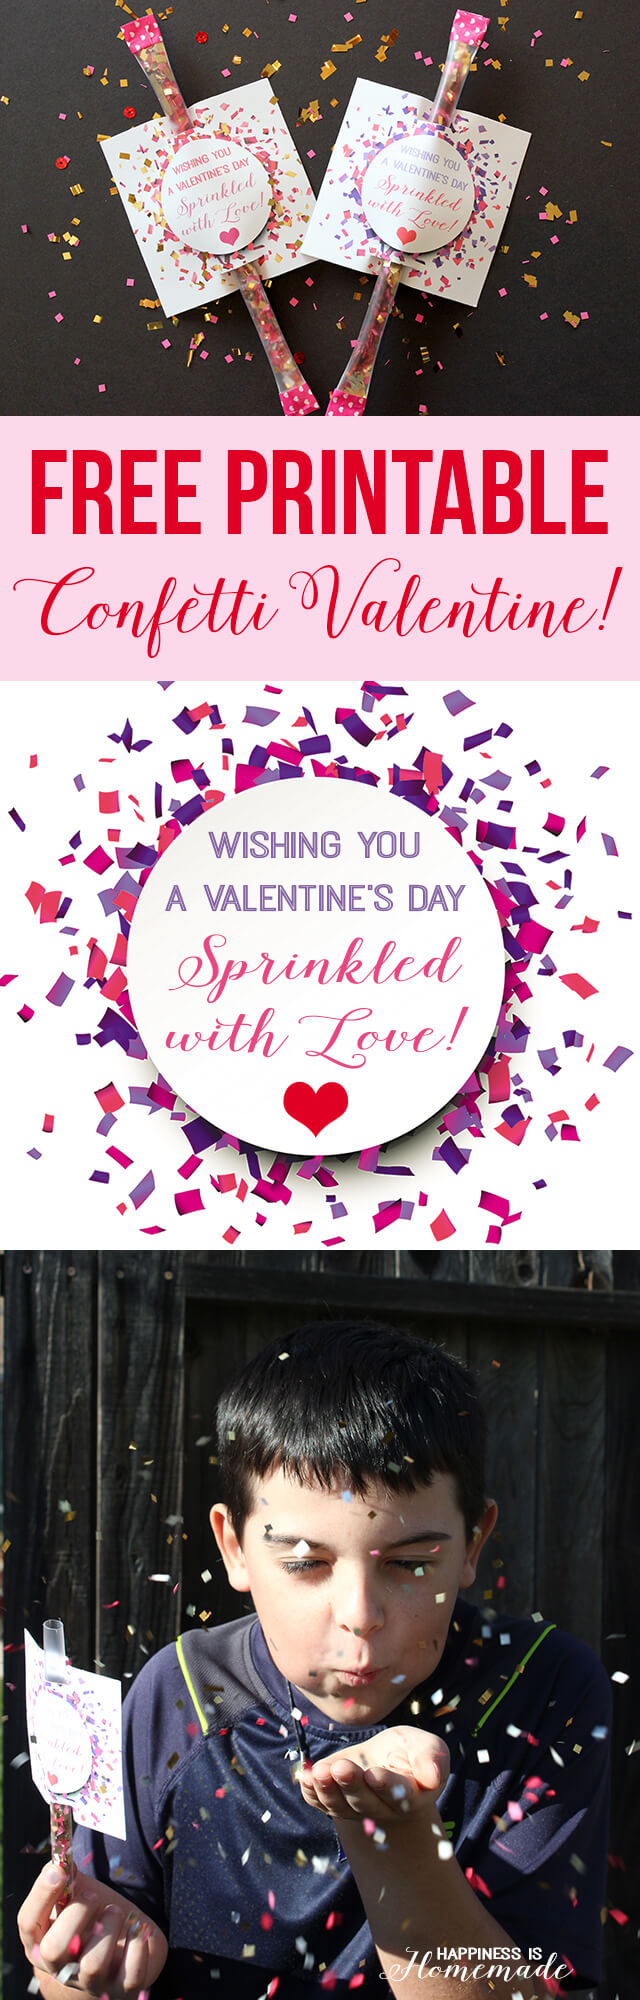 "Sprinkled with Love"" Confetti Valentine - Happiness is Homemade"